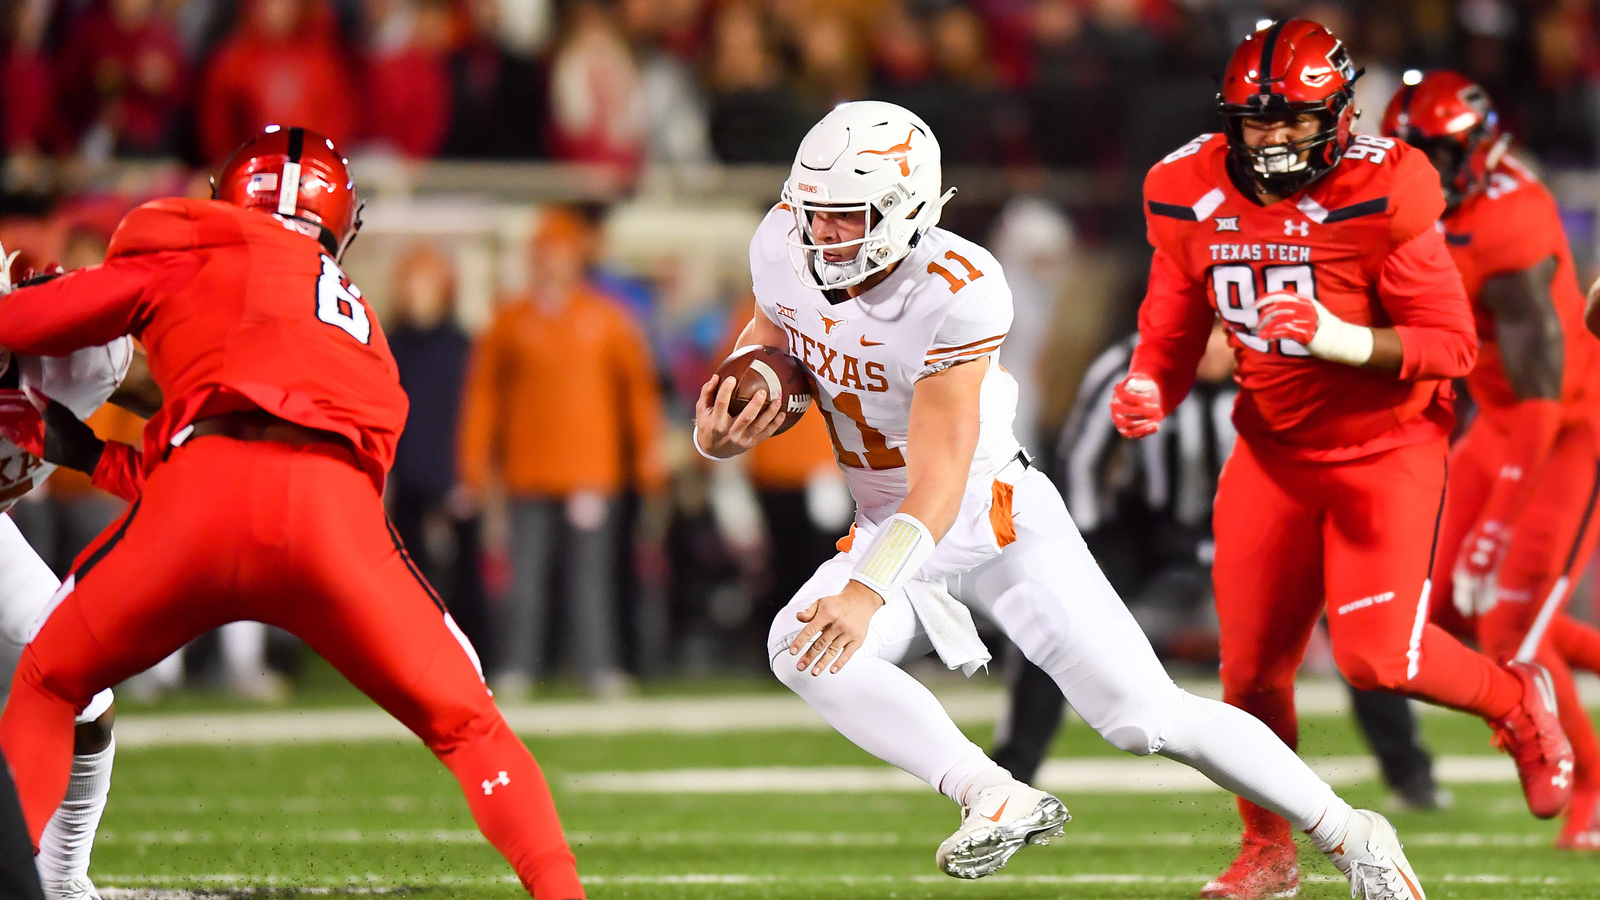 Sam Ehlinger Texas Longhorns Tech